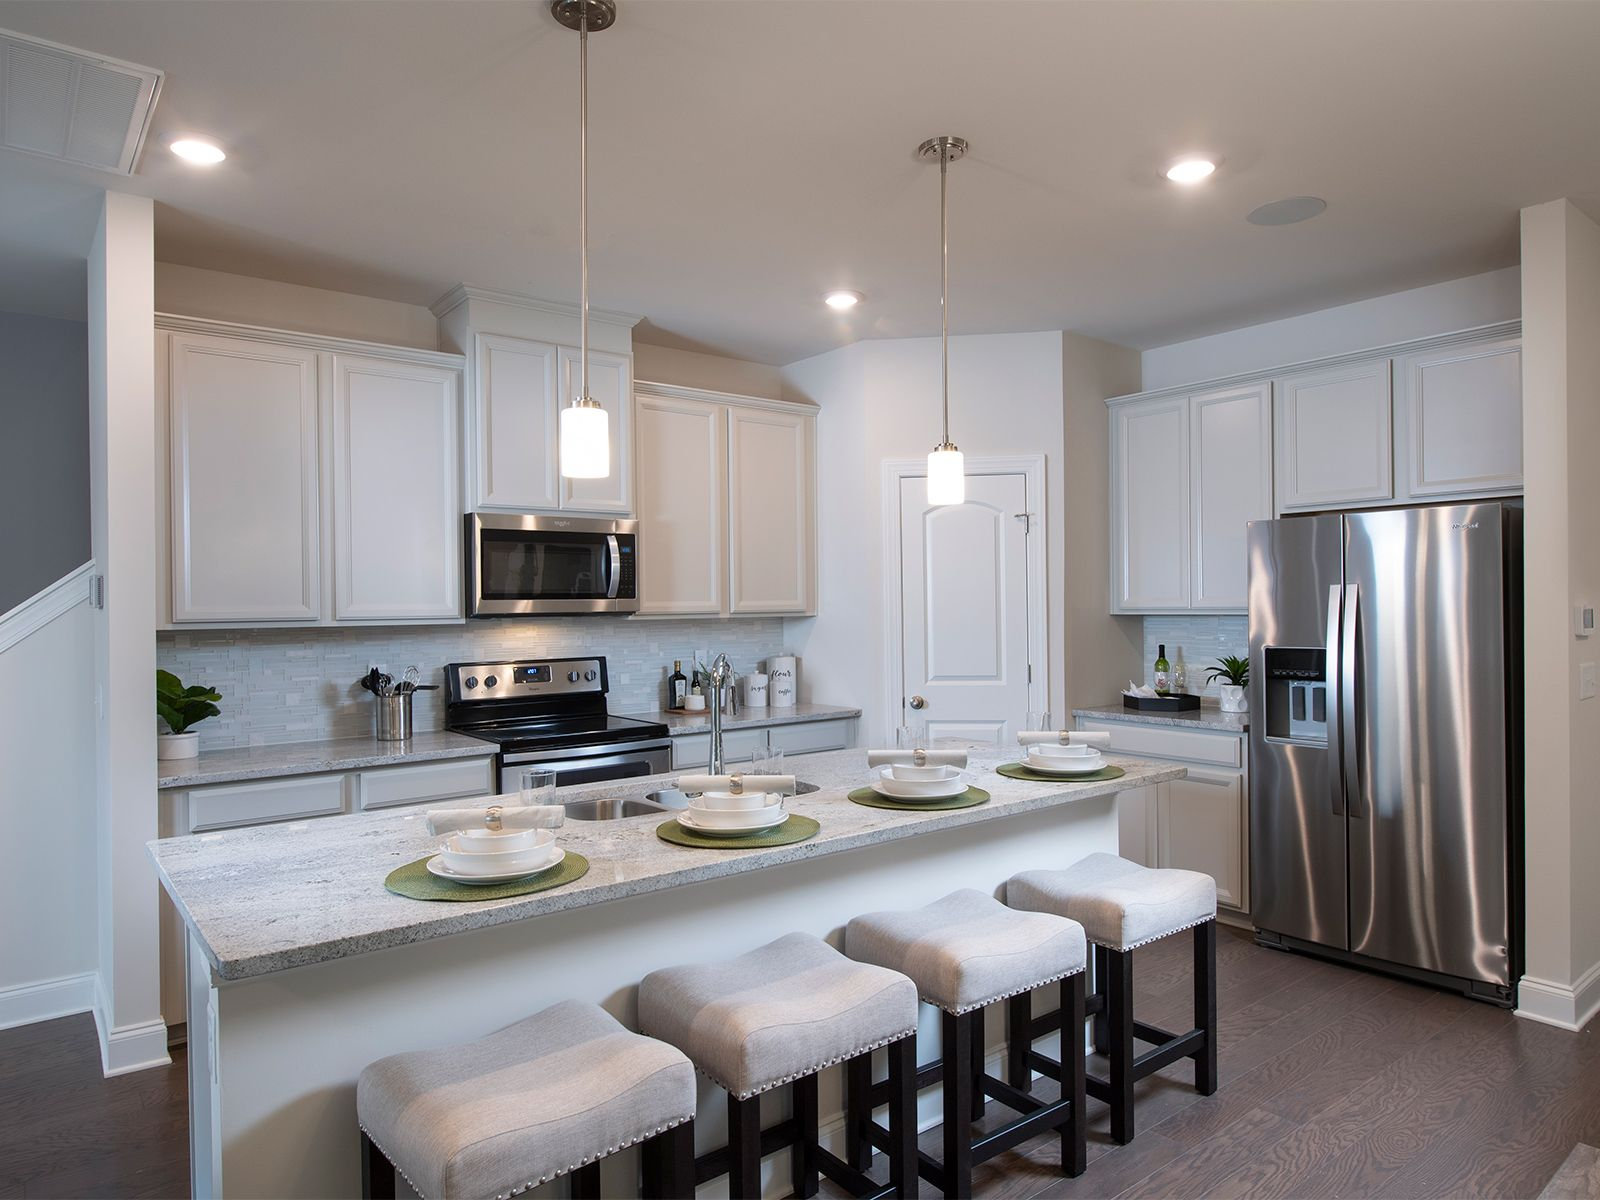 Kitchen featured in the Opal By Meritage Homes in Nashville, TN